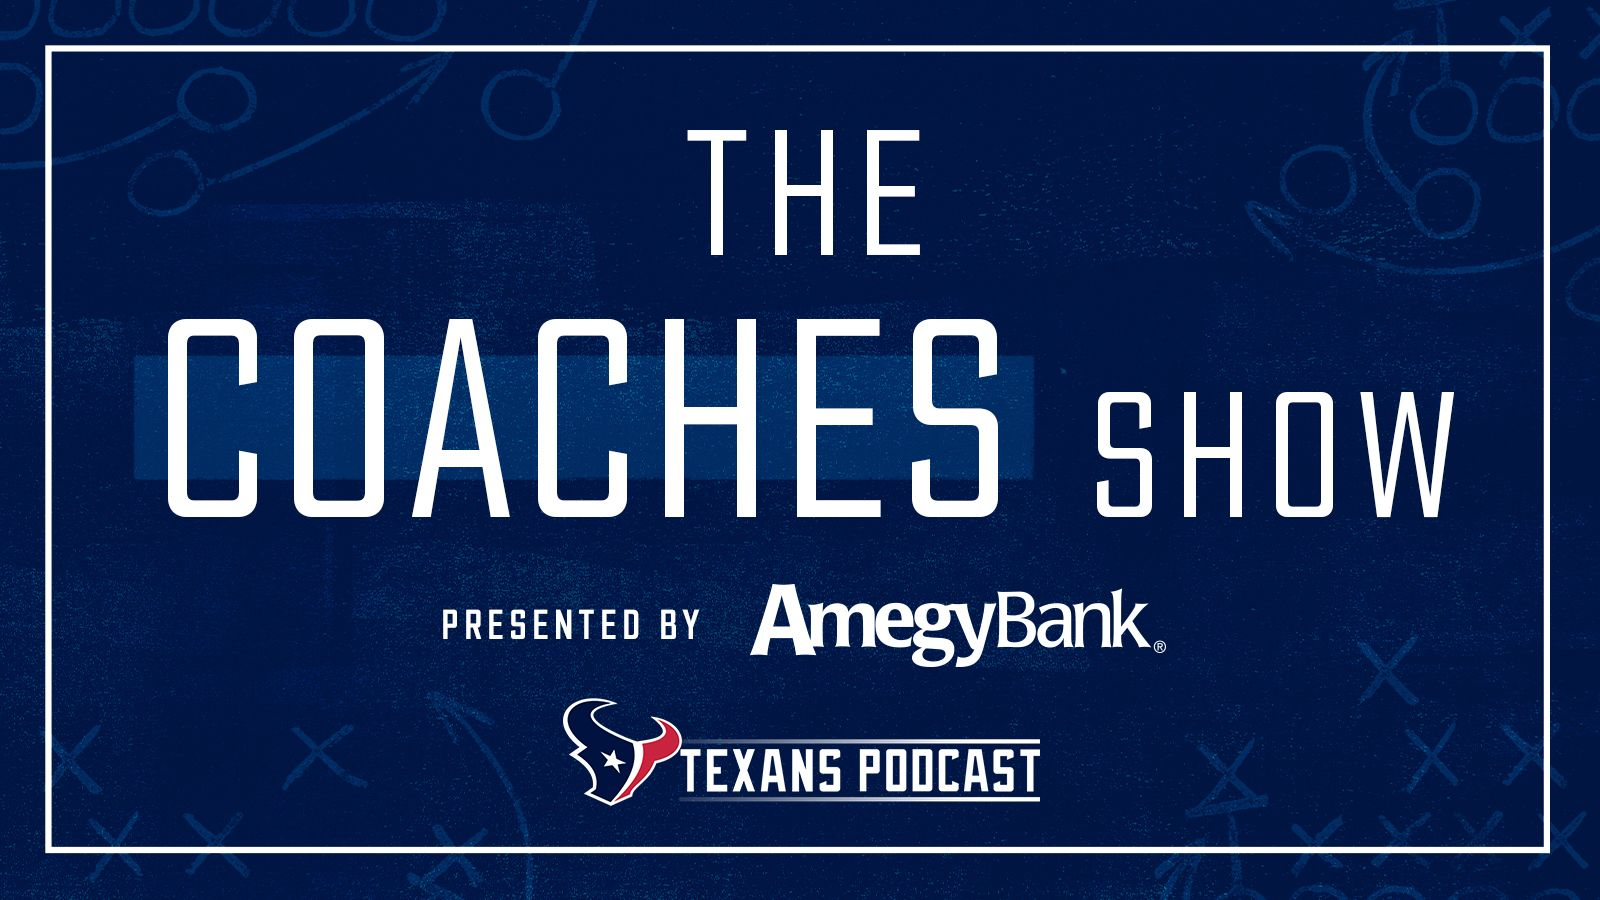 web_TexansPodcast_CoachesShow_1600x900